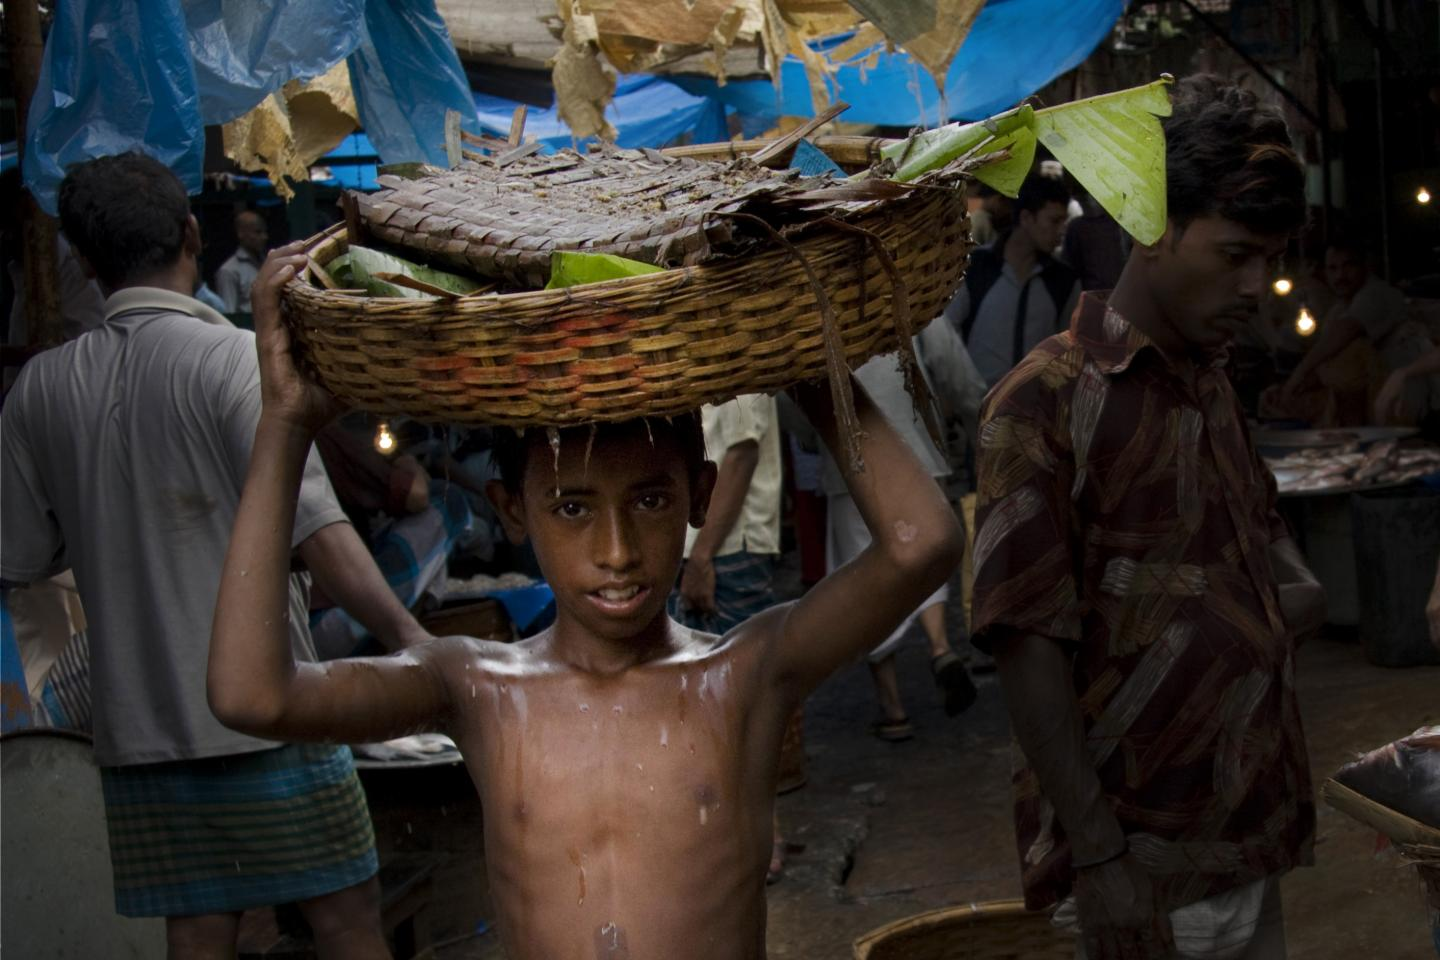 Child labourer Faisal Hosain carries a basket on his head at Dhaka's Mirpur fish market.